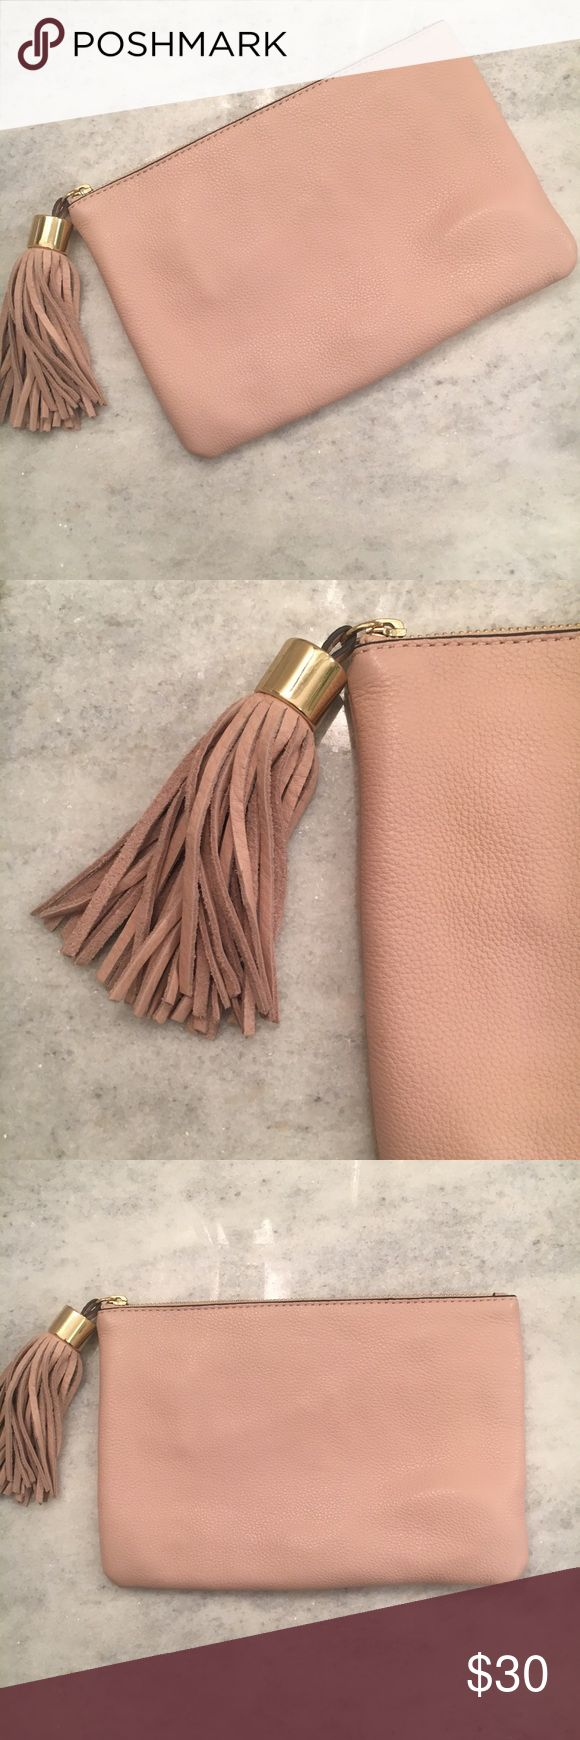 """{gili} Blush Clutch with Tassel Accent Gorgeous genuine leather clutch with tassel accent by GILI. Used only a handful of times. In EUC! Approximate measurements are 9.5"""" x 7"""". Blush color is a must and goes with everything! Gold tone hardware **I ship daily** GILI Bags Clutches & Wristlets"""